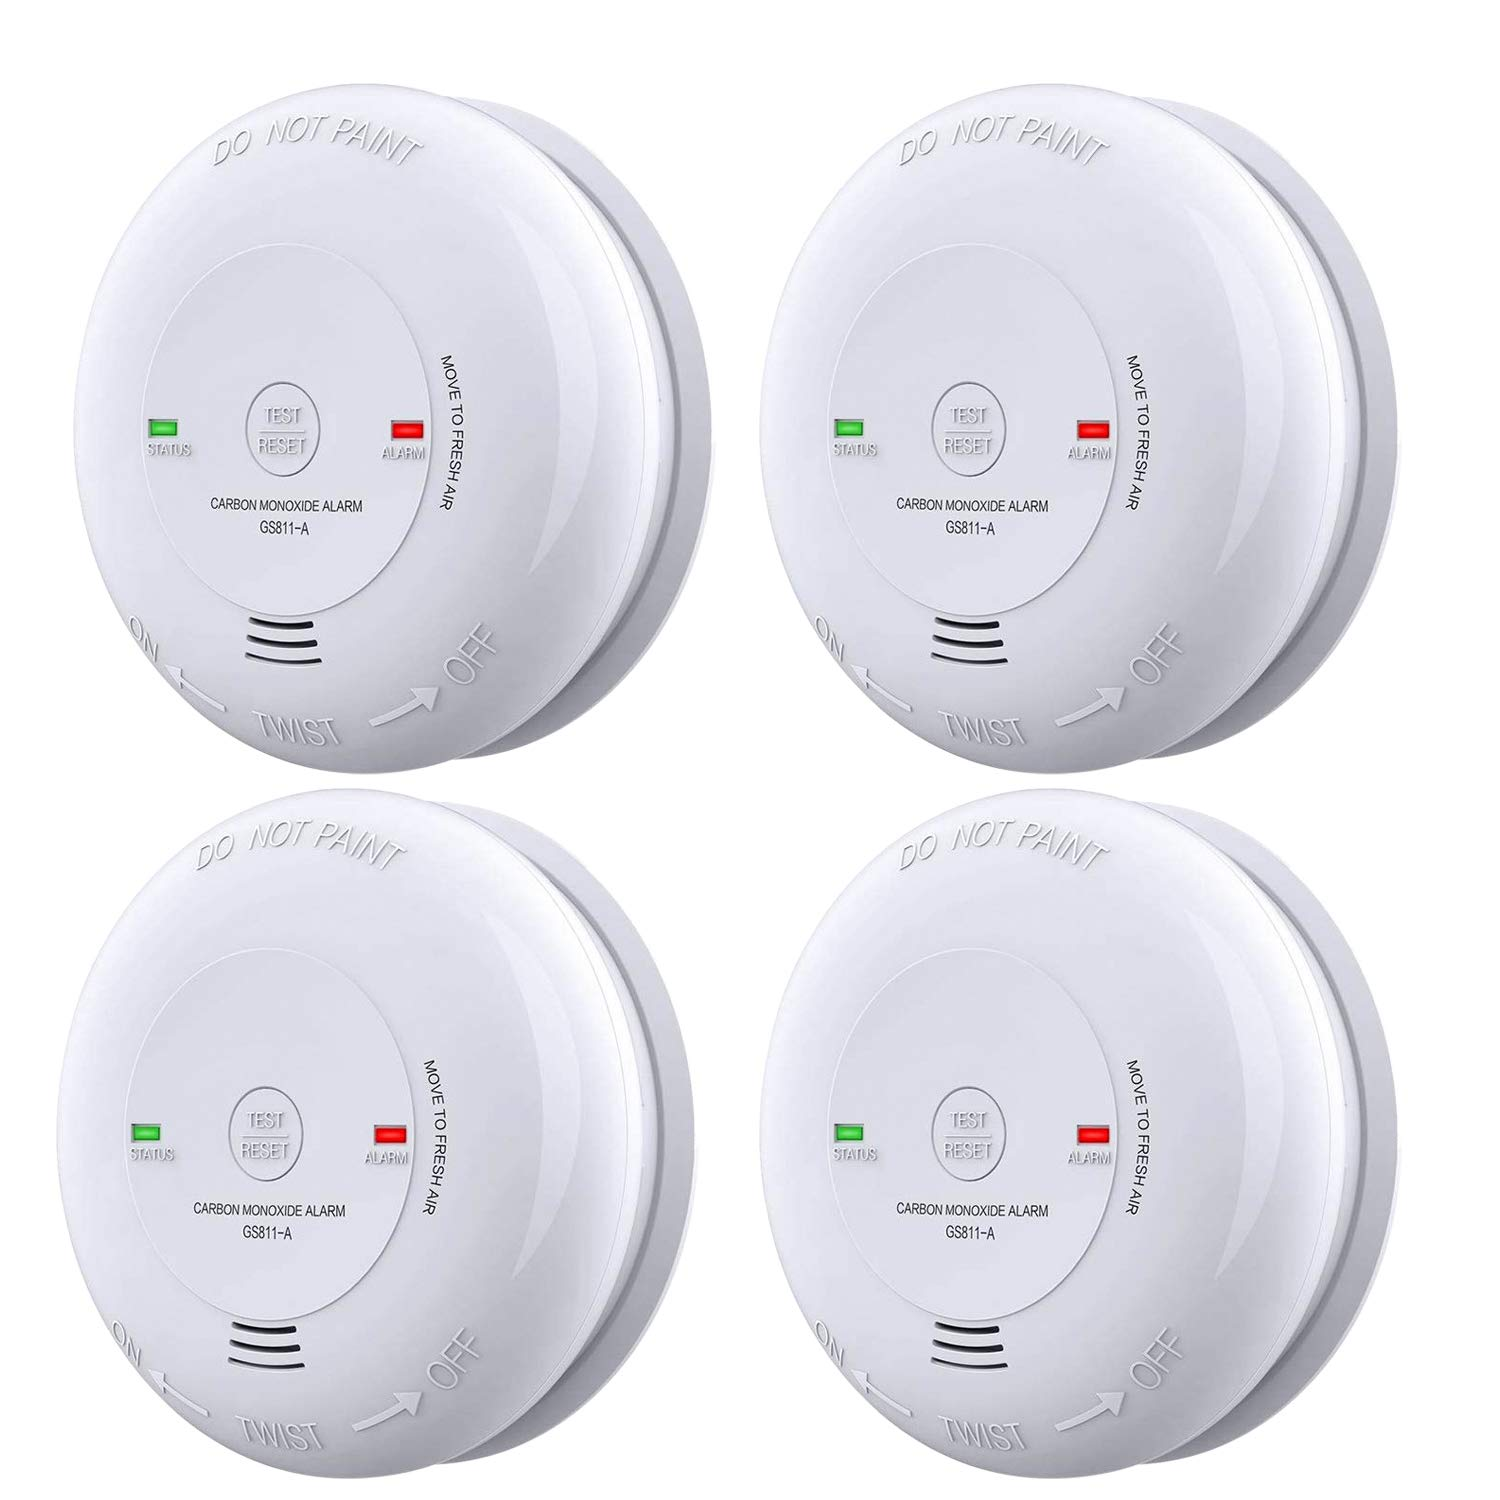 Carbon Monoxide Alarm 4 Packs UL 2034 Listed Carbon Monoxide Detector Battery-Operated CO Alarm(Not Hardwired) Silence Button, Electrochemical Sensor(Battery Included)